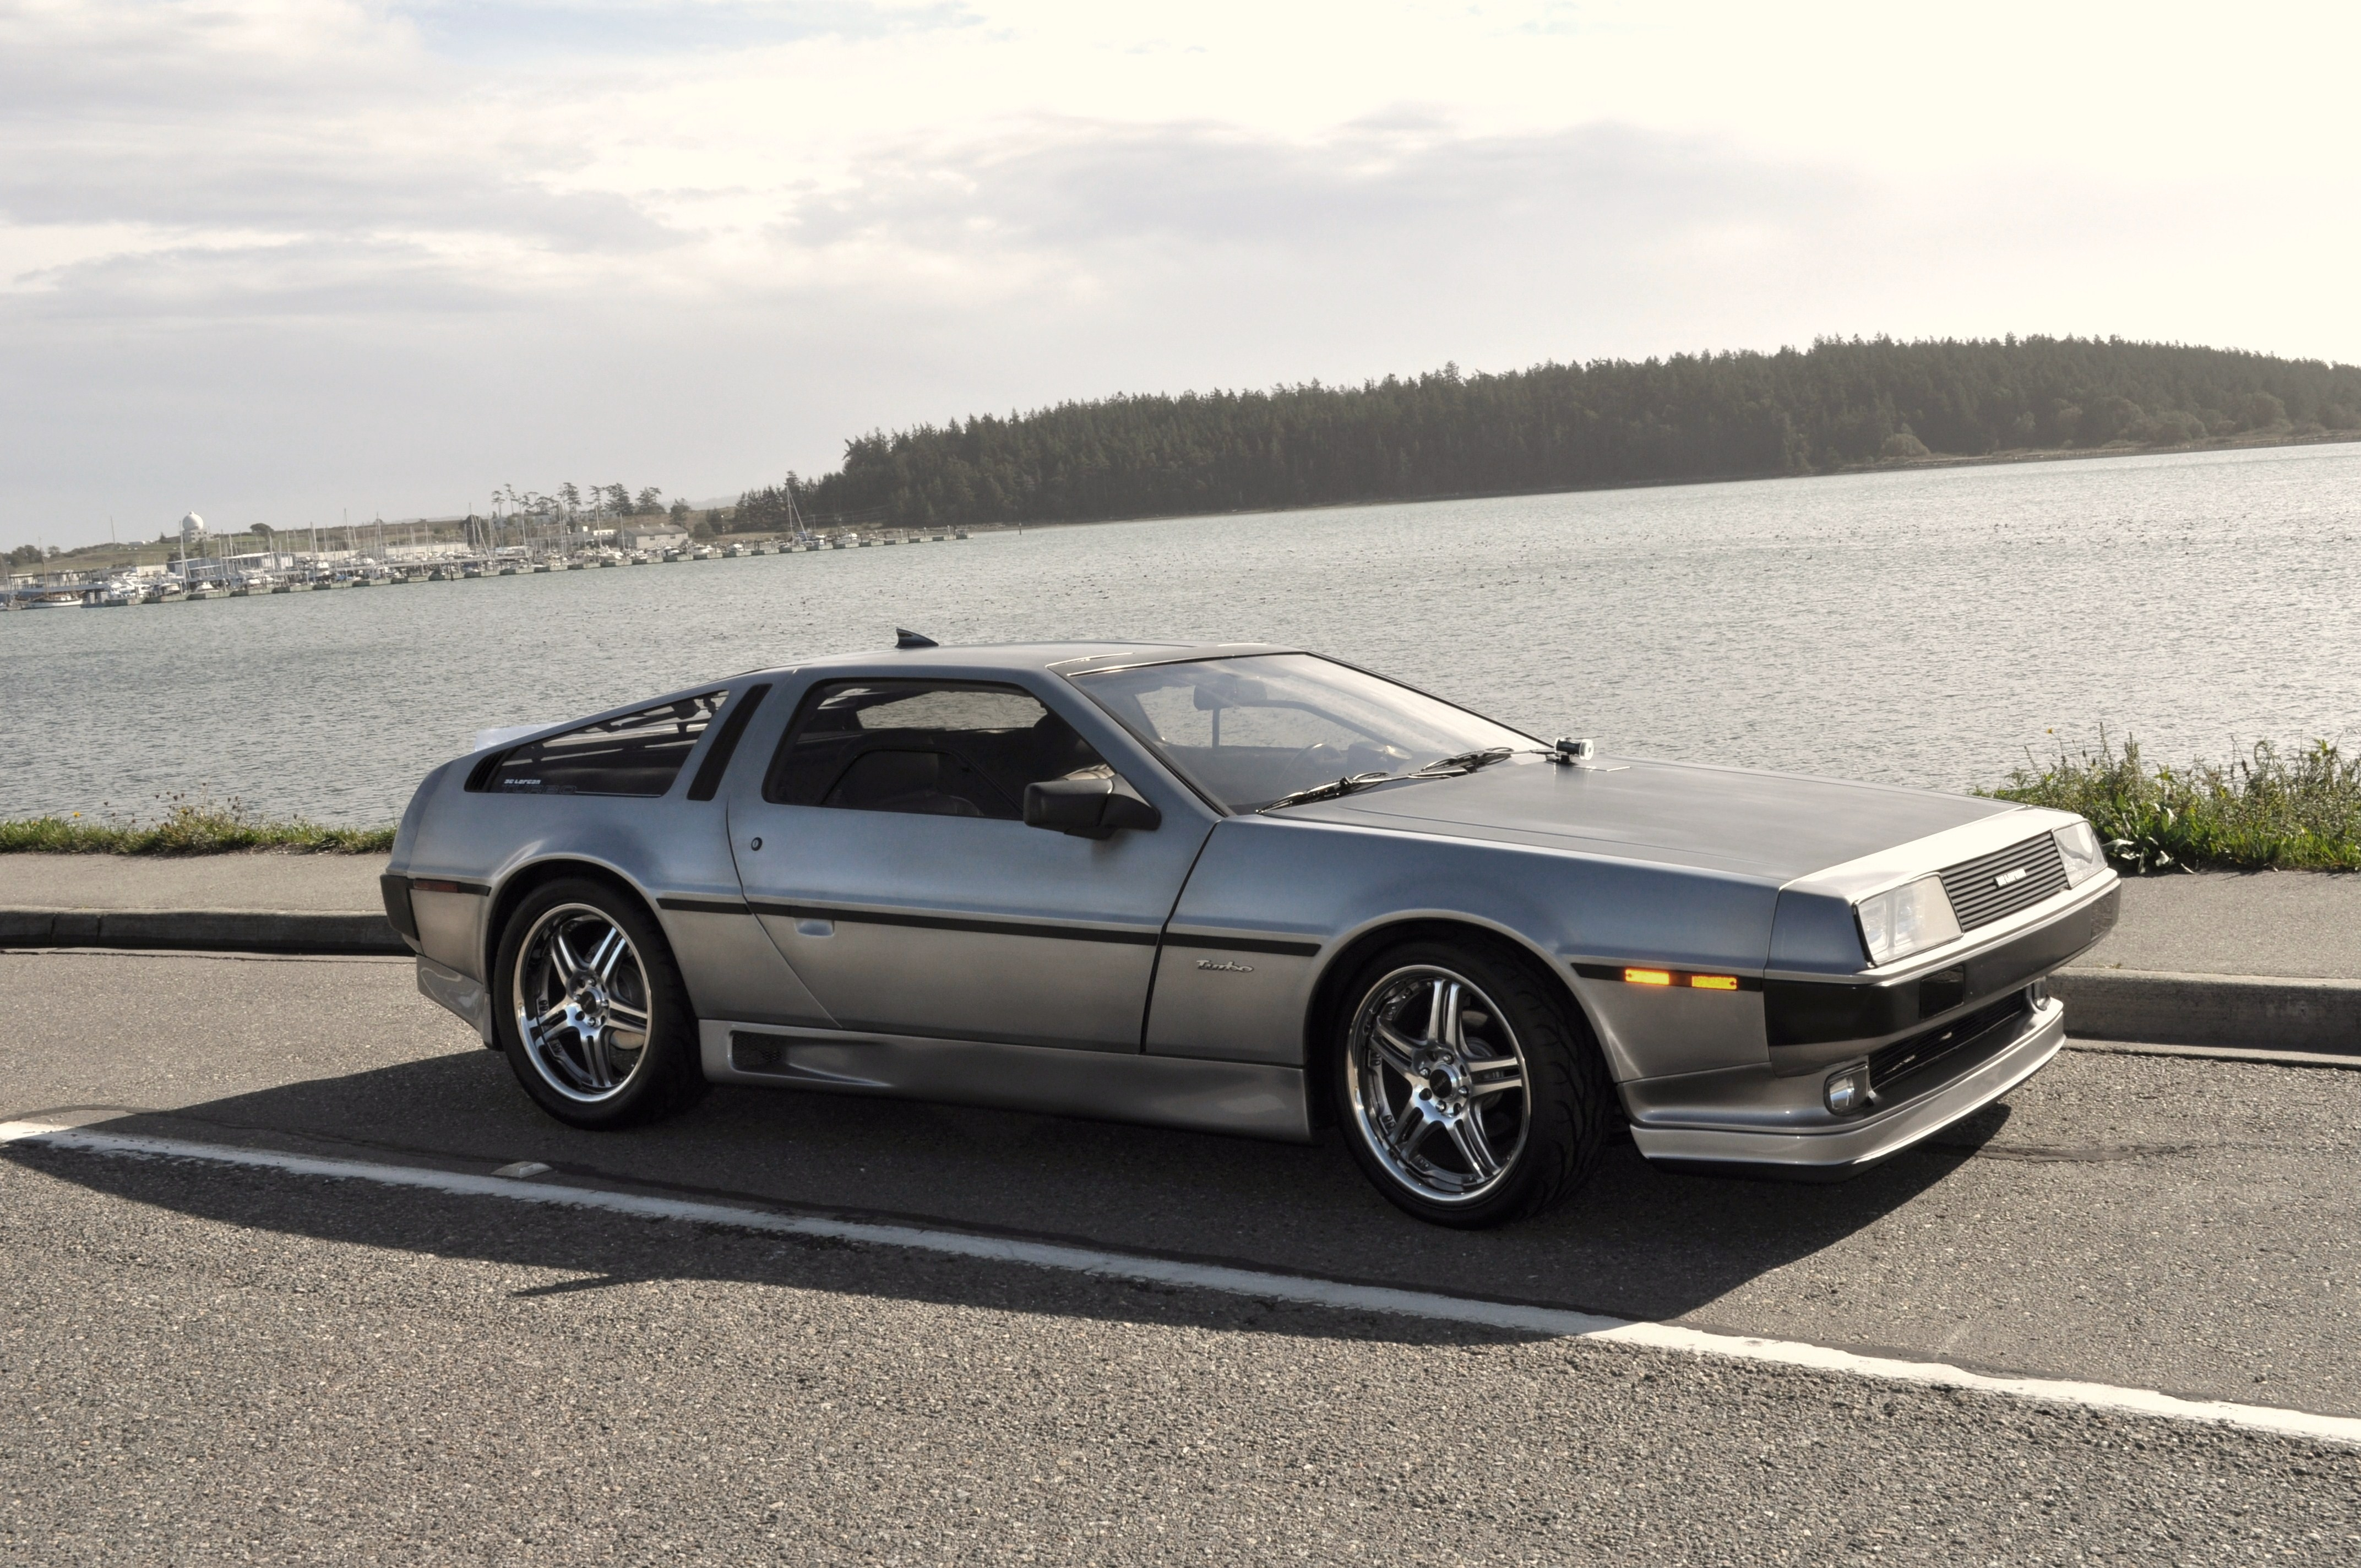 Delorean07 1981 DeLorean DMC-12 14812480